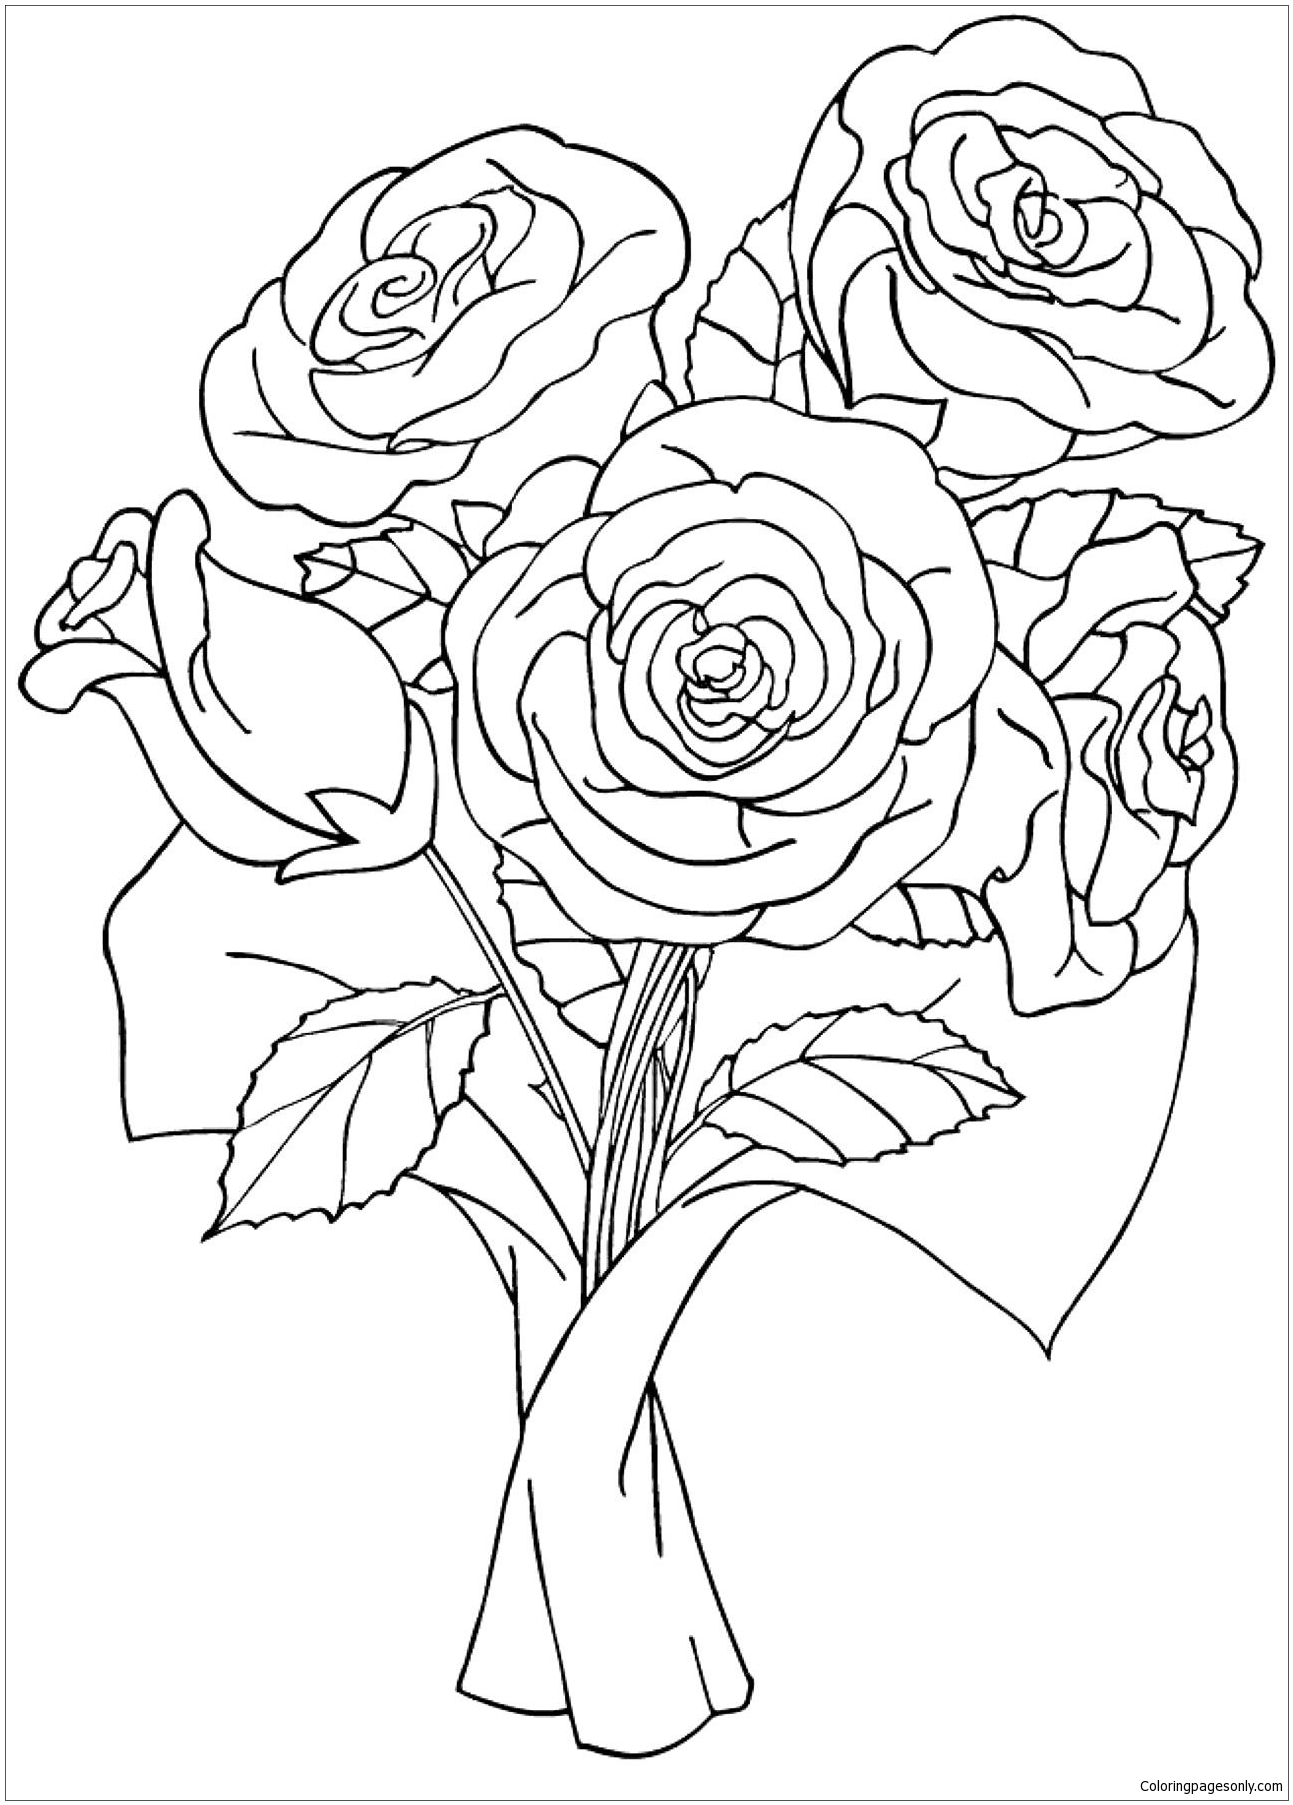 rose color sheets coloring pages for kids rose coloring pages for kids color sheets rose